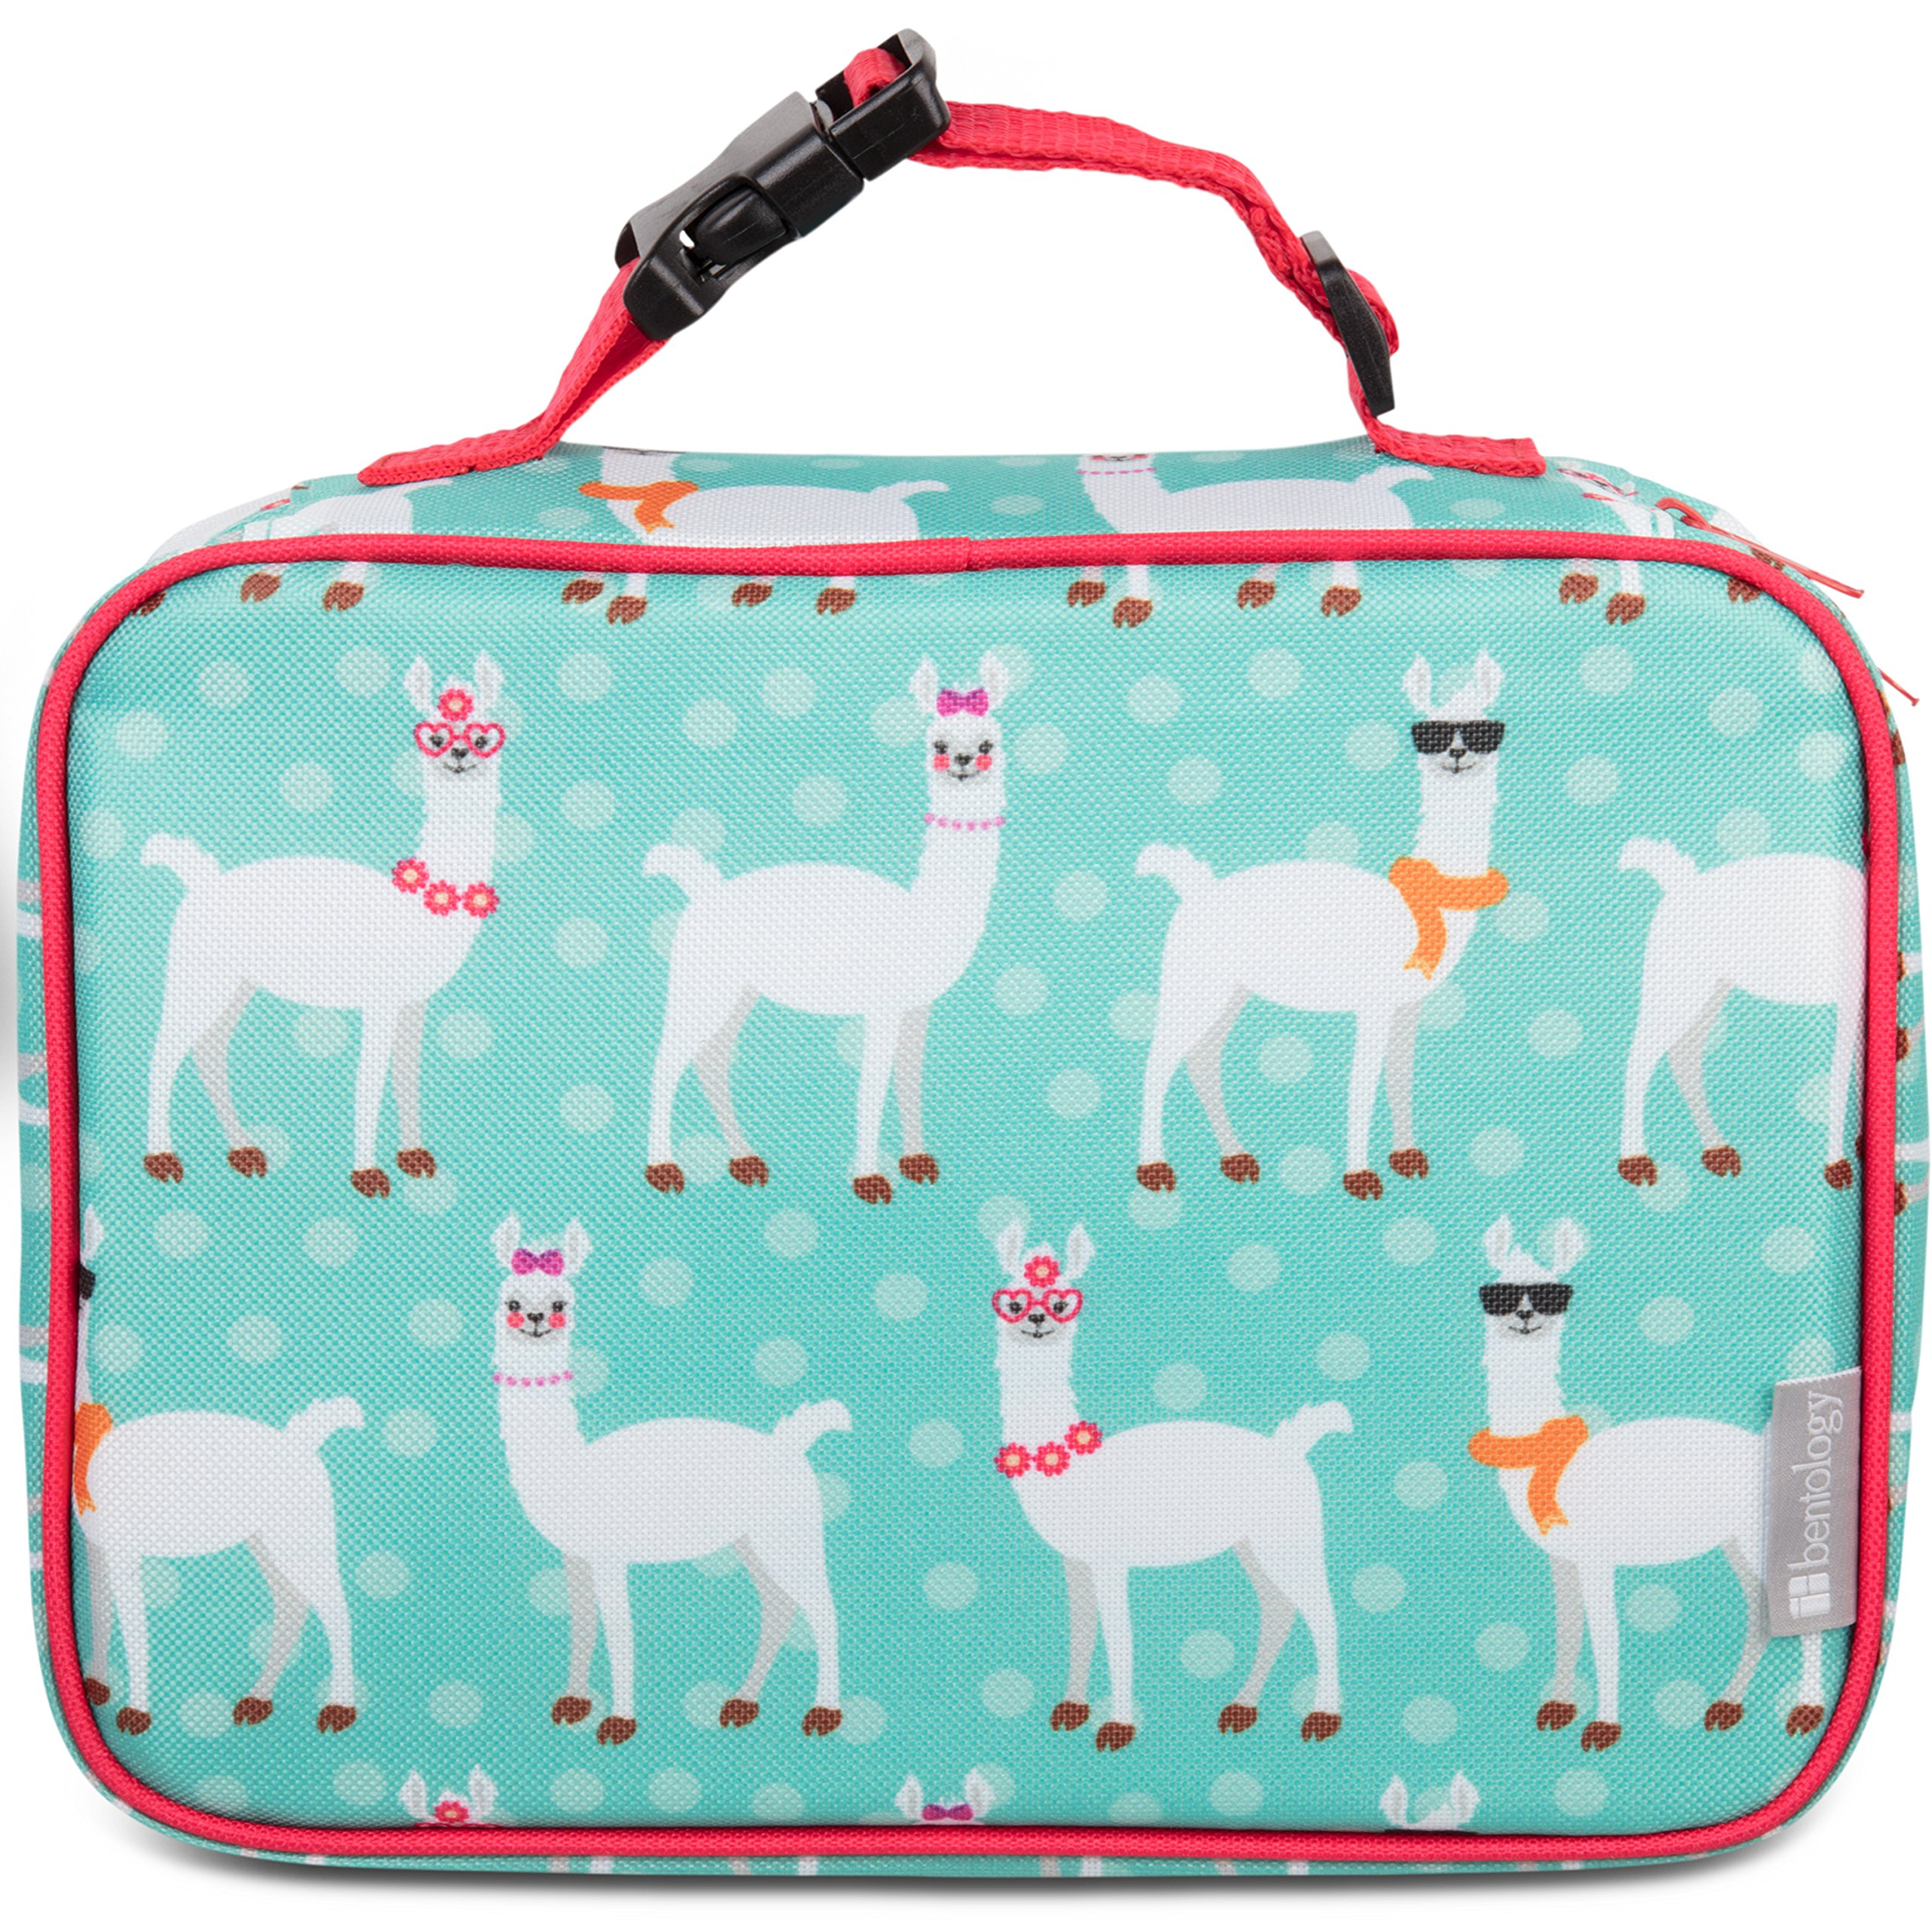 Insulated Lunch Box Sleeve - Securely Cover Your Bento Box (Llama)